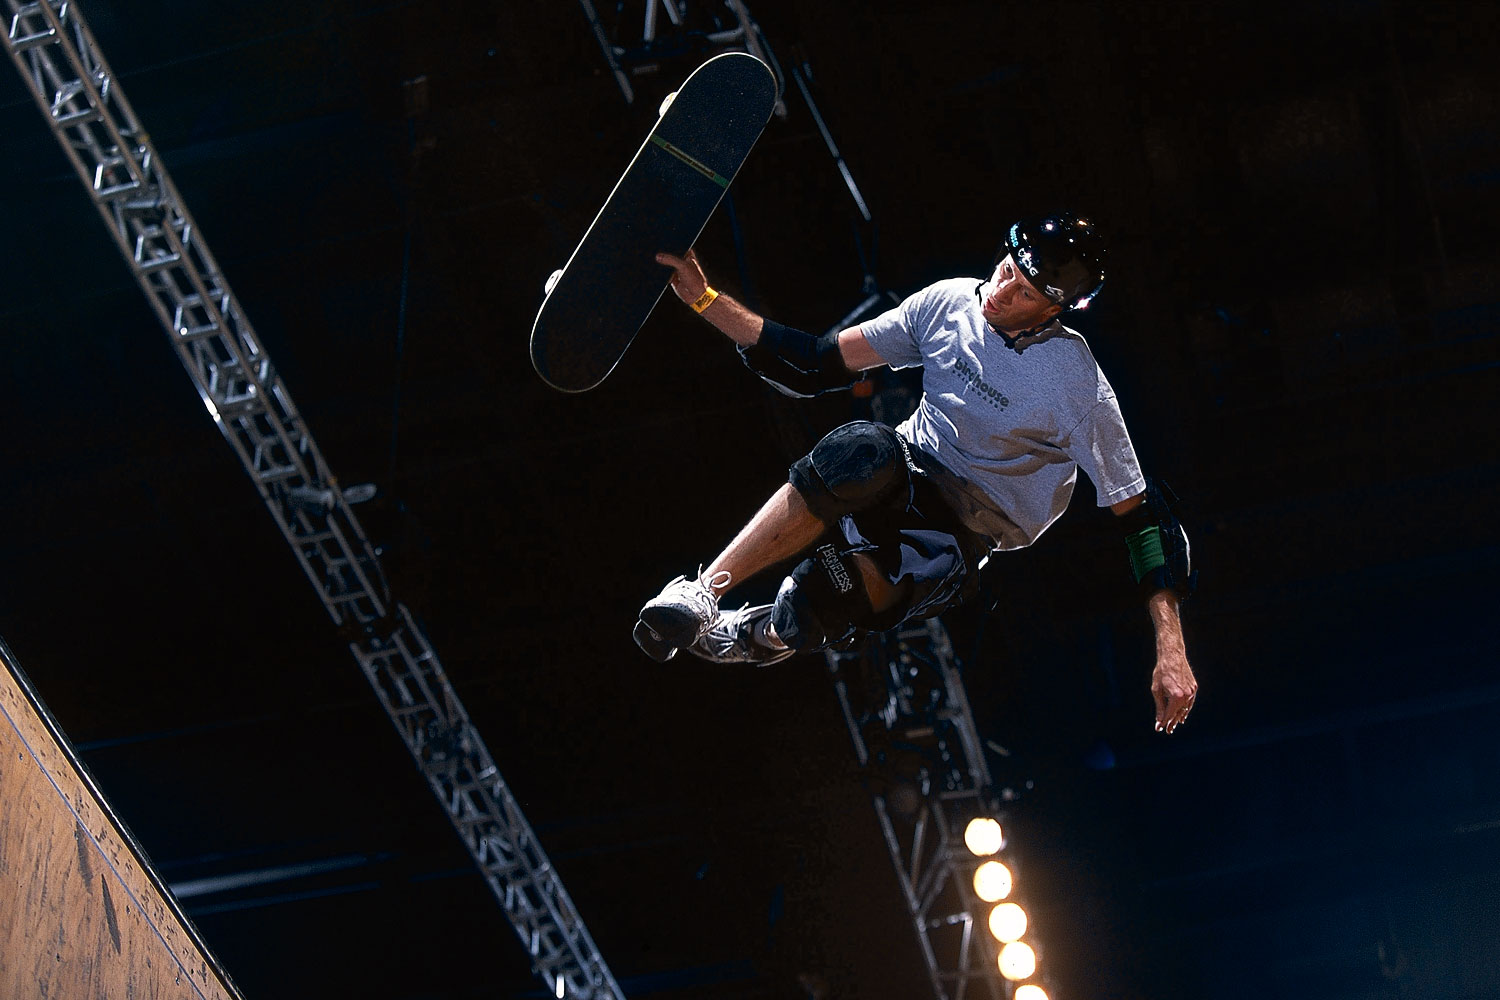 Tony Hawk rotating in the air during the Boom Boom Huckjam competition in Las Vegas.